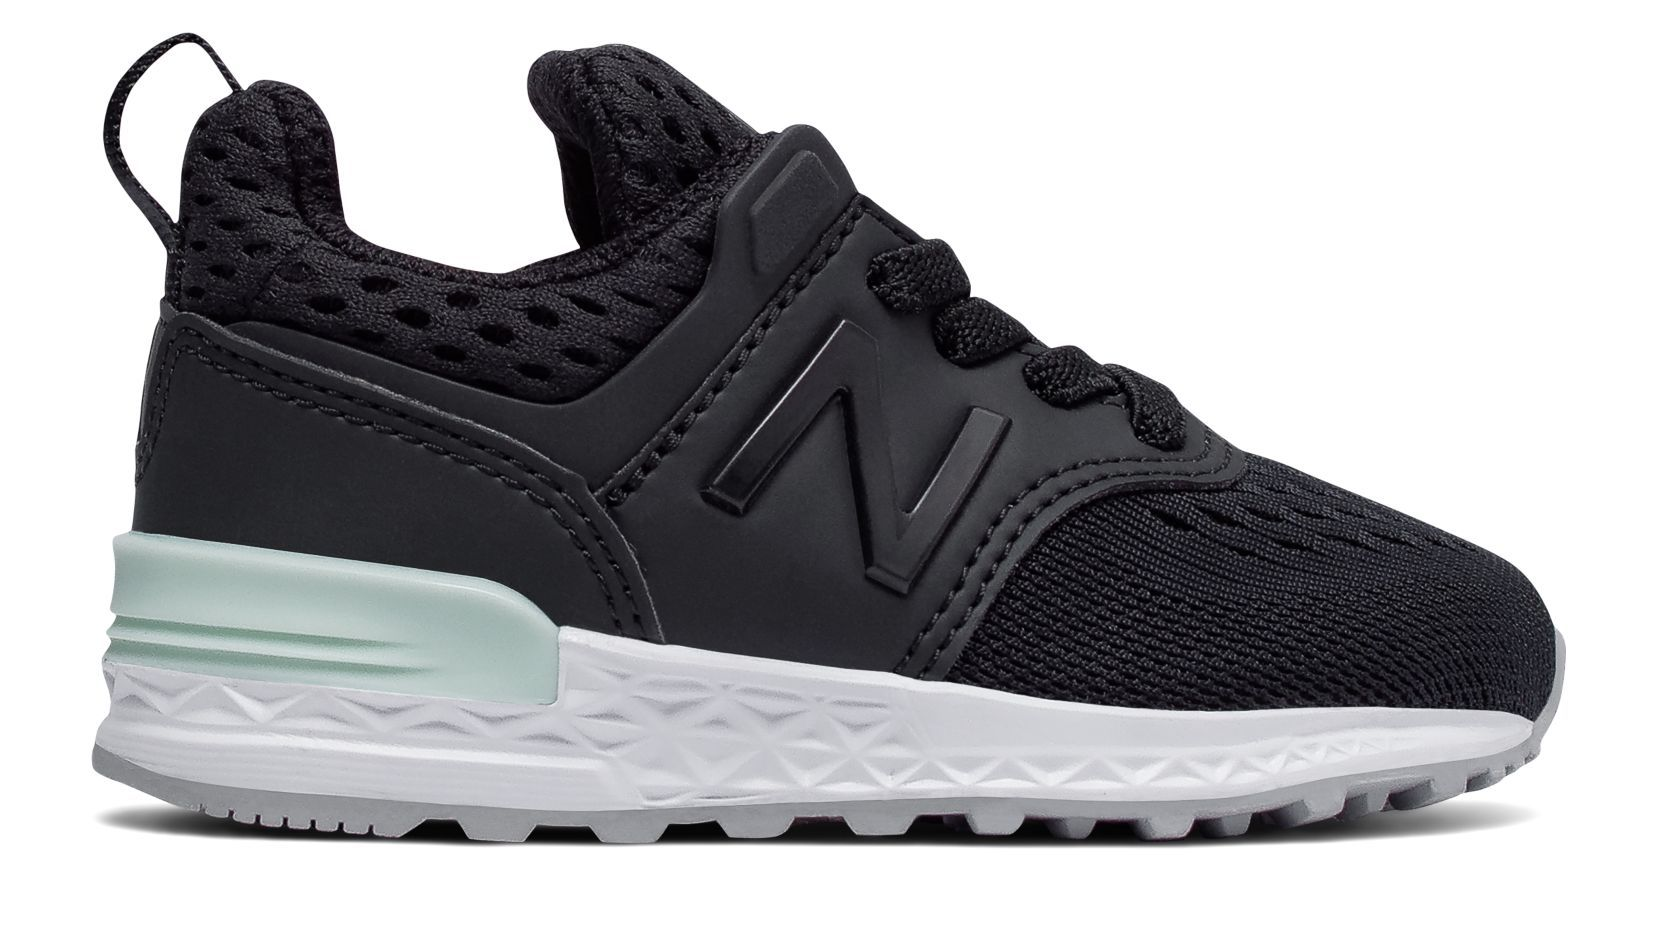 New Balance 574 Sport, Black with Seafoam Toddler shoes